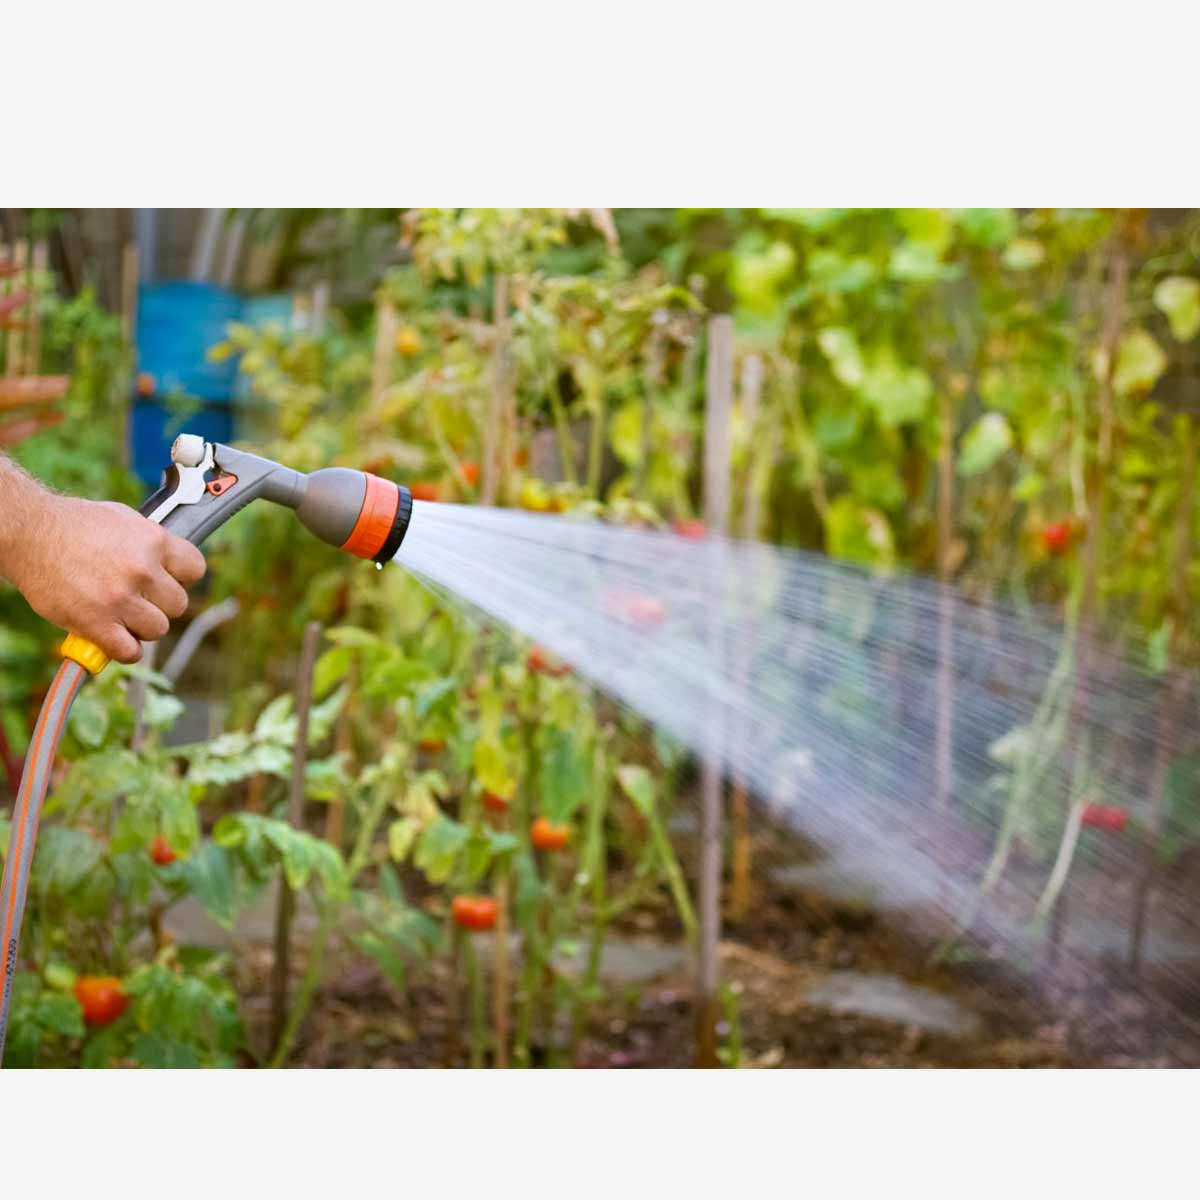 Quelle solution d arrosage choisir pour son jardin ? - L arrosage goutte a goutte Iriso